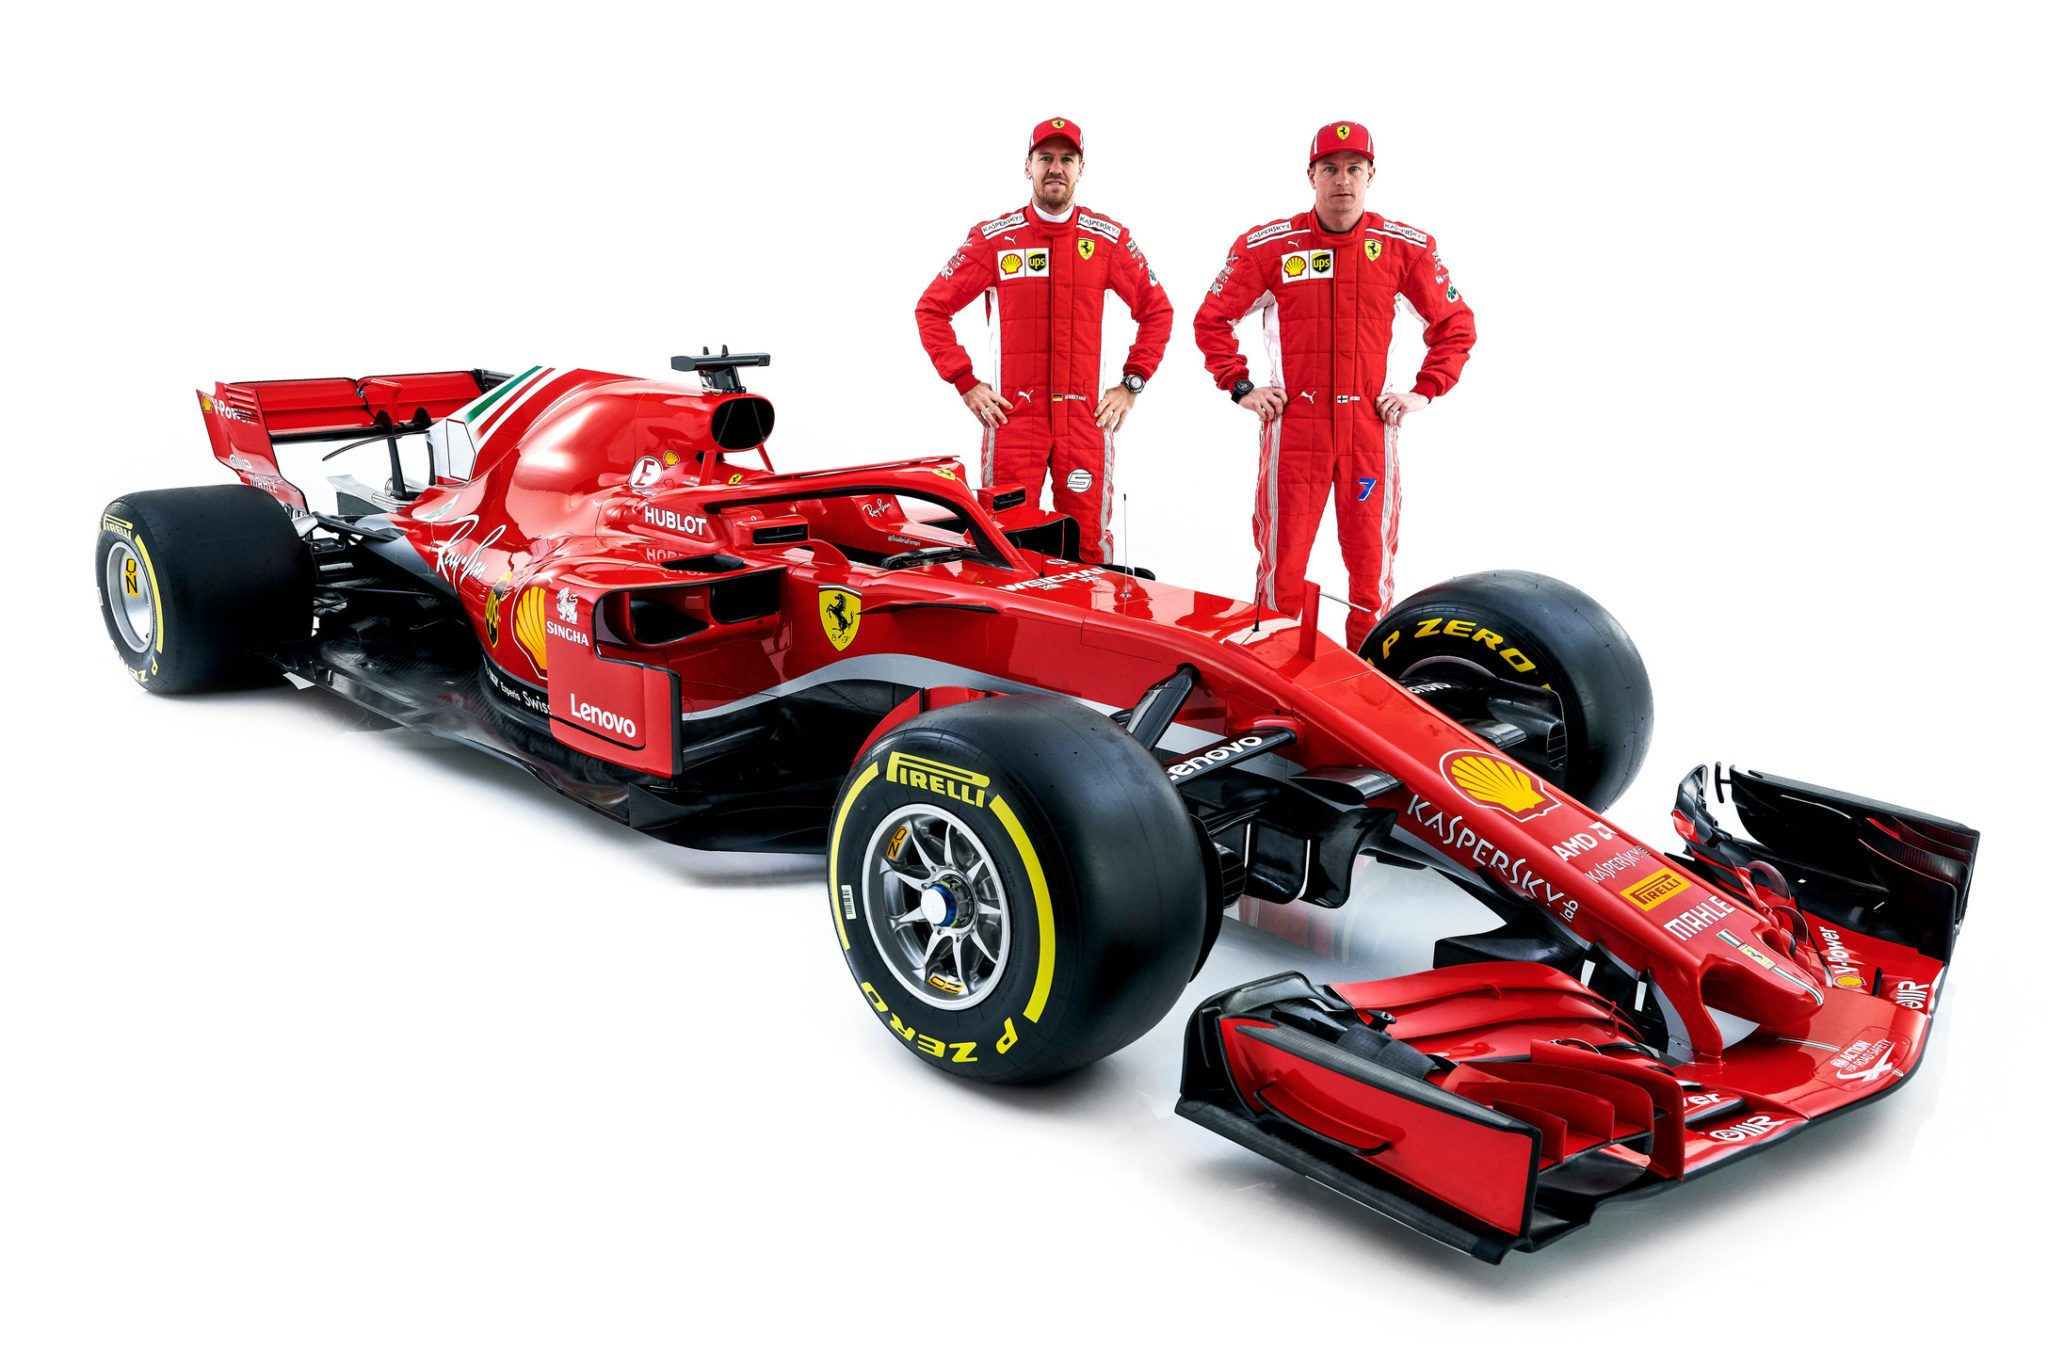 alonso and mclaren with Ferrari Reveals Maranellos 2018 F1  Petitor Sf71h on Max Verstappen 2018 Rb14 also Hot Model With Six Pack Abs likewise Flavio Briatore Says Fernando Alonso Loves Mclaren additionally Mclaren Considering Options With Honda in addition Fernando Alonso Miss Monaco Grand Prix Indianapolis 500 Mclaren Confirm 1616721.